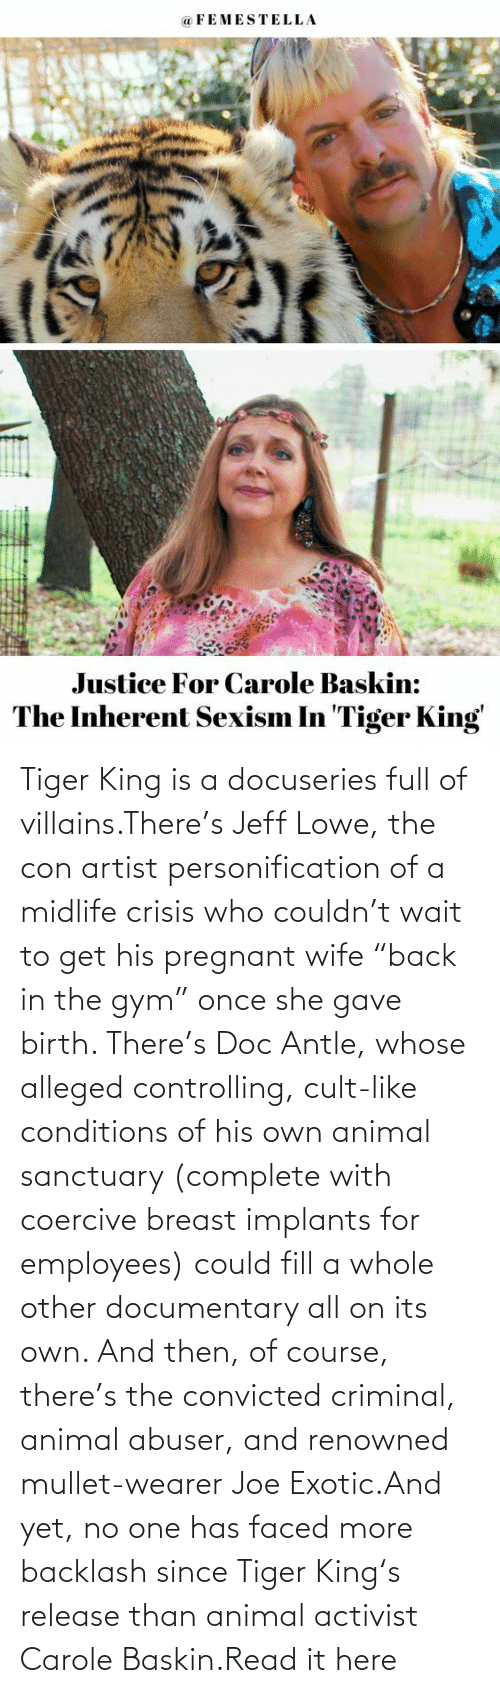 "Pregnant Wife: Tiger King is a docuseries full of villains.There's Jeff Lowe, the con artist personification of a midlife crisis who couldn't wait to get his pregnant wife ""back in the gym"" once she gave birth. There's Doc Antle, whose alleged controlling, cult-like conditions of his own animal sanctuary (complete with coercive breast implants for employees) could fill a whole other documentary all on its own. And then, of course, there's the convicted criminal, animal abuser, and renowned mullet-wearer Joe Exotic.And yet, no one has faced more backlash since Tiger King's release than animal activist Carole Baskin.Read it here"